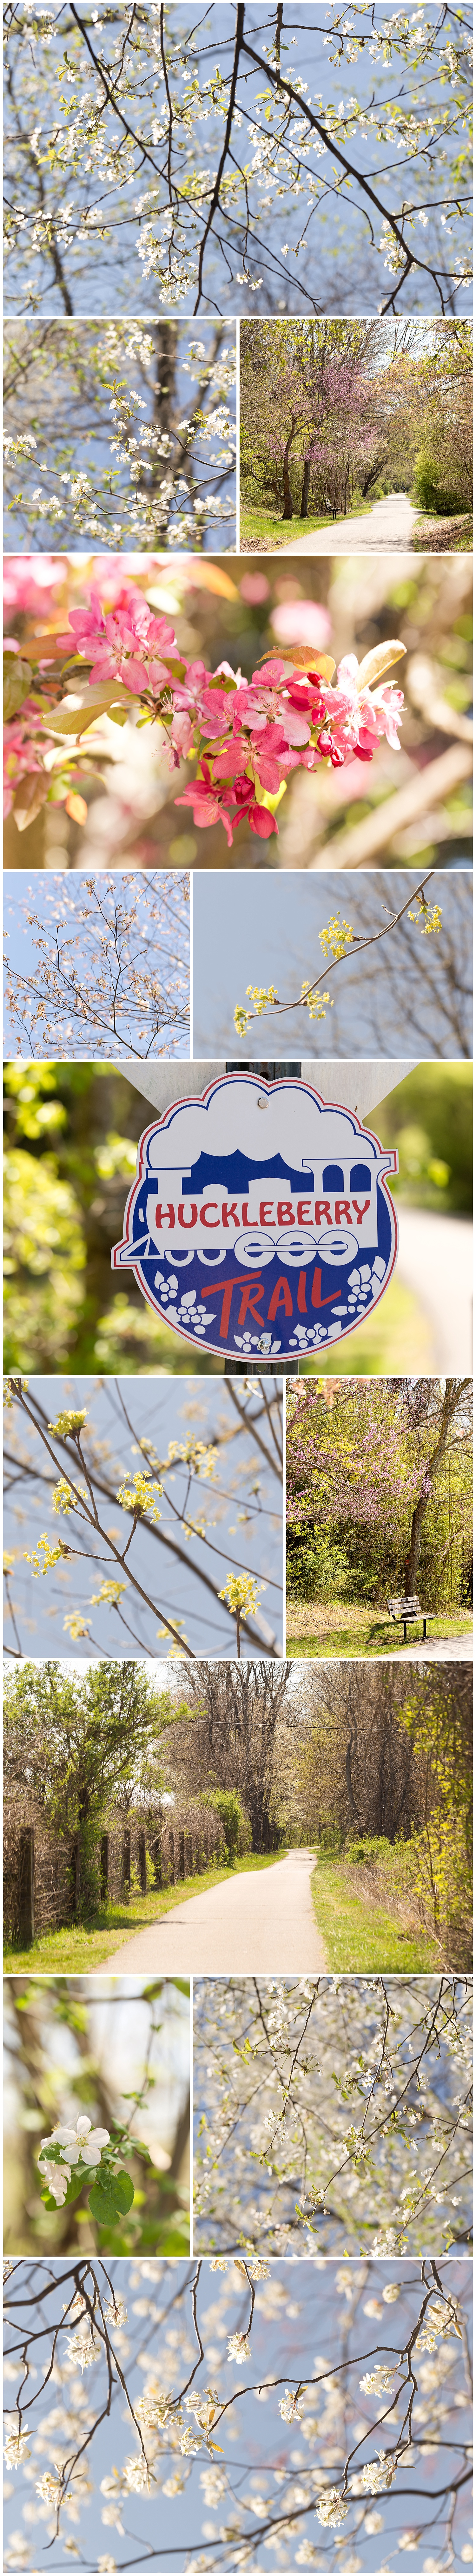 nature photography on Huckleberry Trail, Virginia flower photos